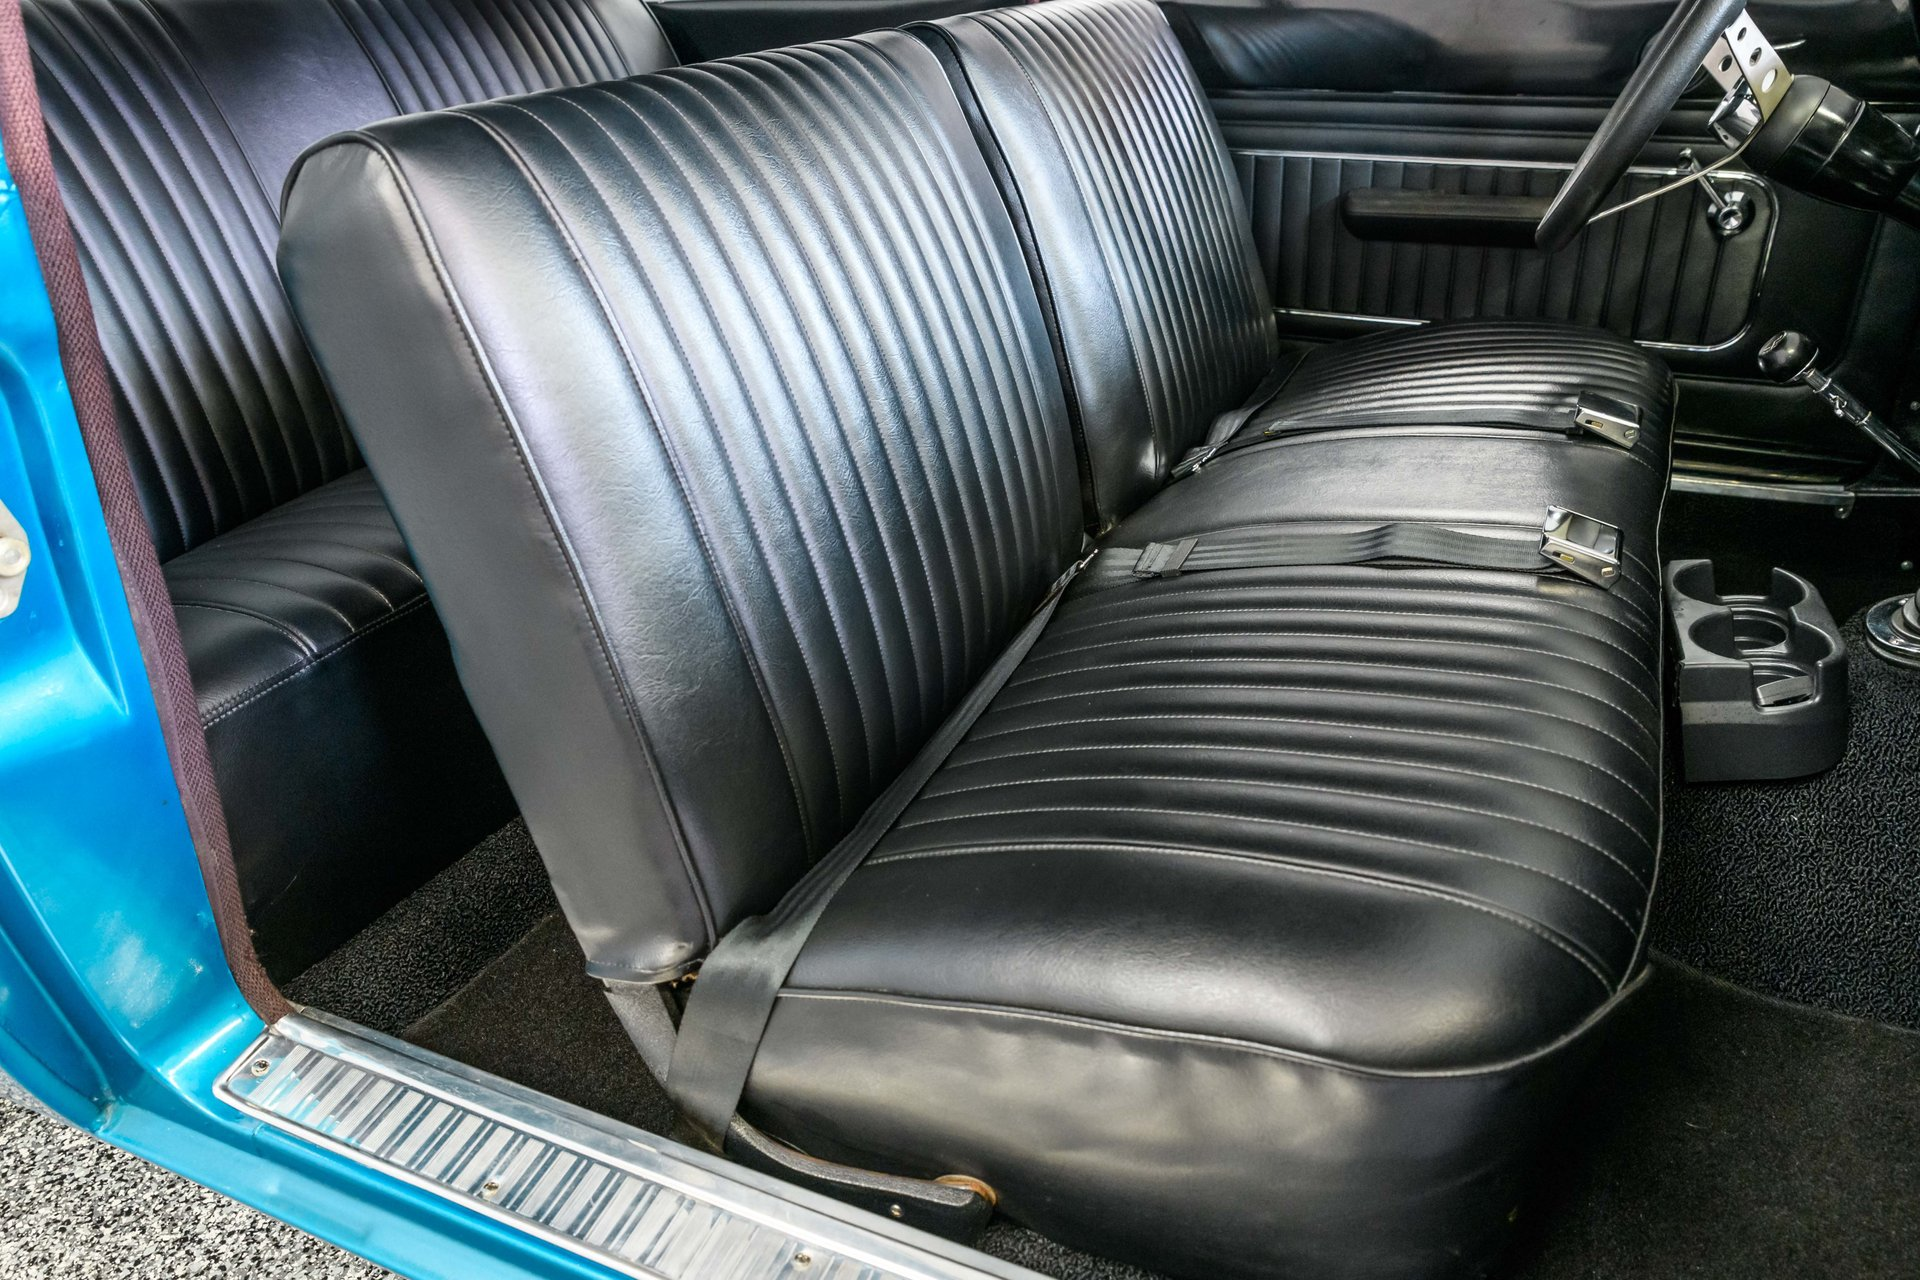 Superb 1965 Ford Falcon Futura For Sale 107768 Mcg Caraccident5 Cool Chair Designs And Ideas Caraccident5Info